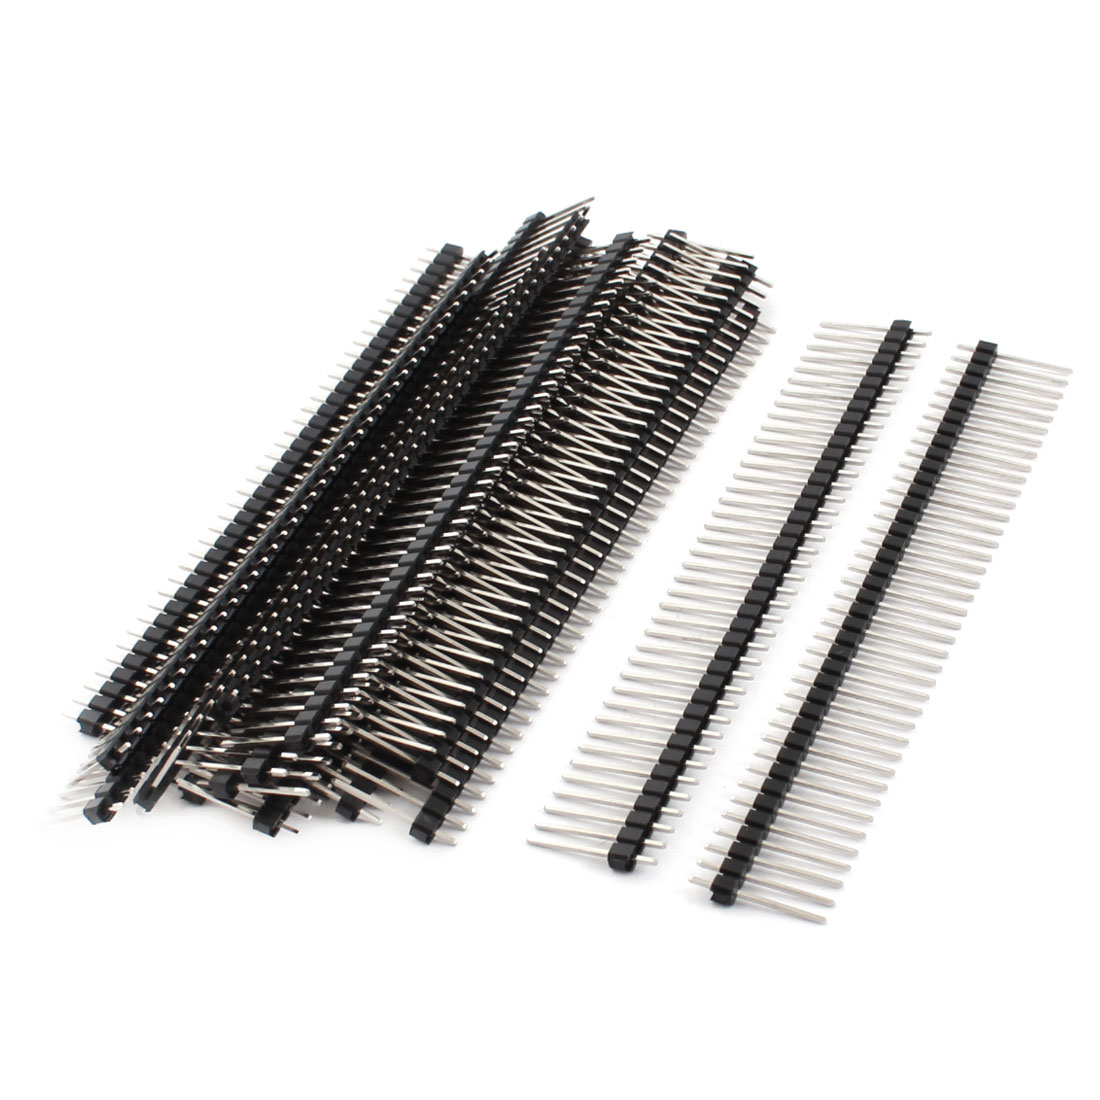 20 Pcs 2.54mm Pitch One Row 40Pin Male Through Hole Straight Pin Header Strip Connector 16mm Length